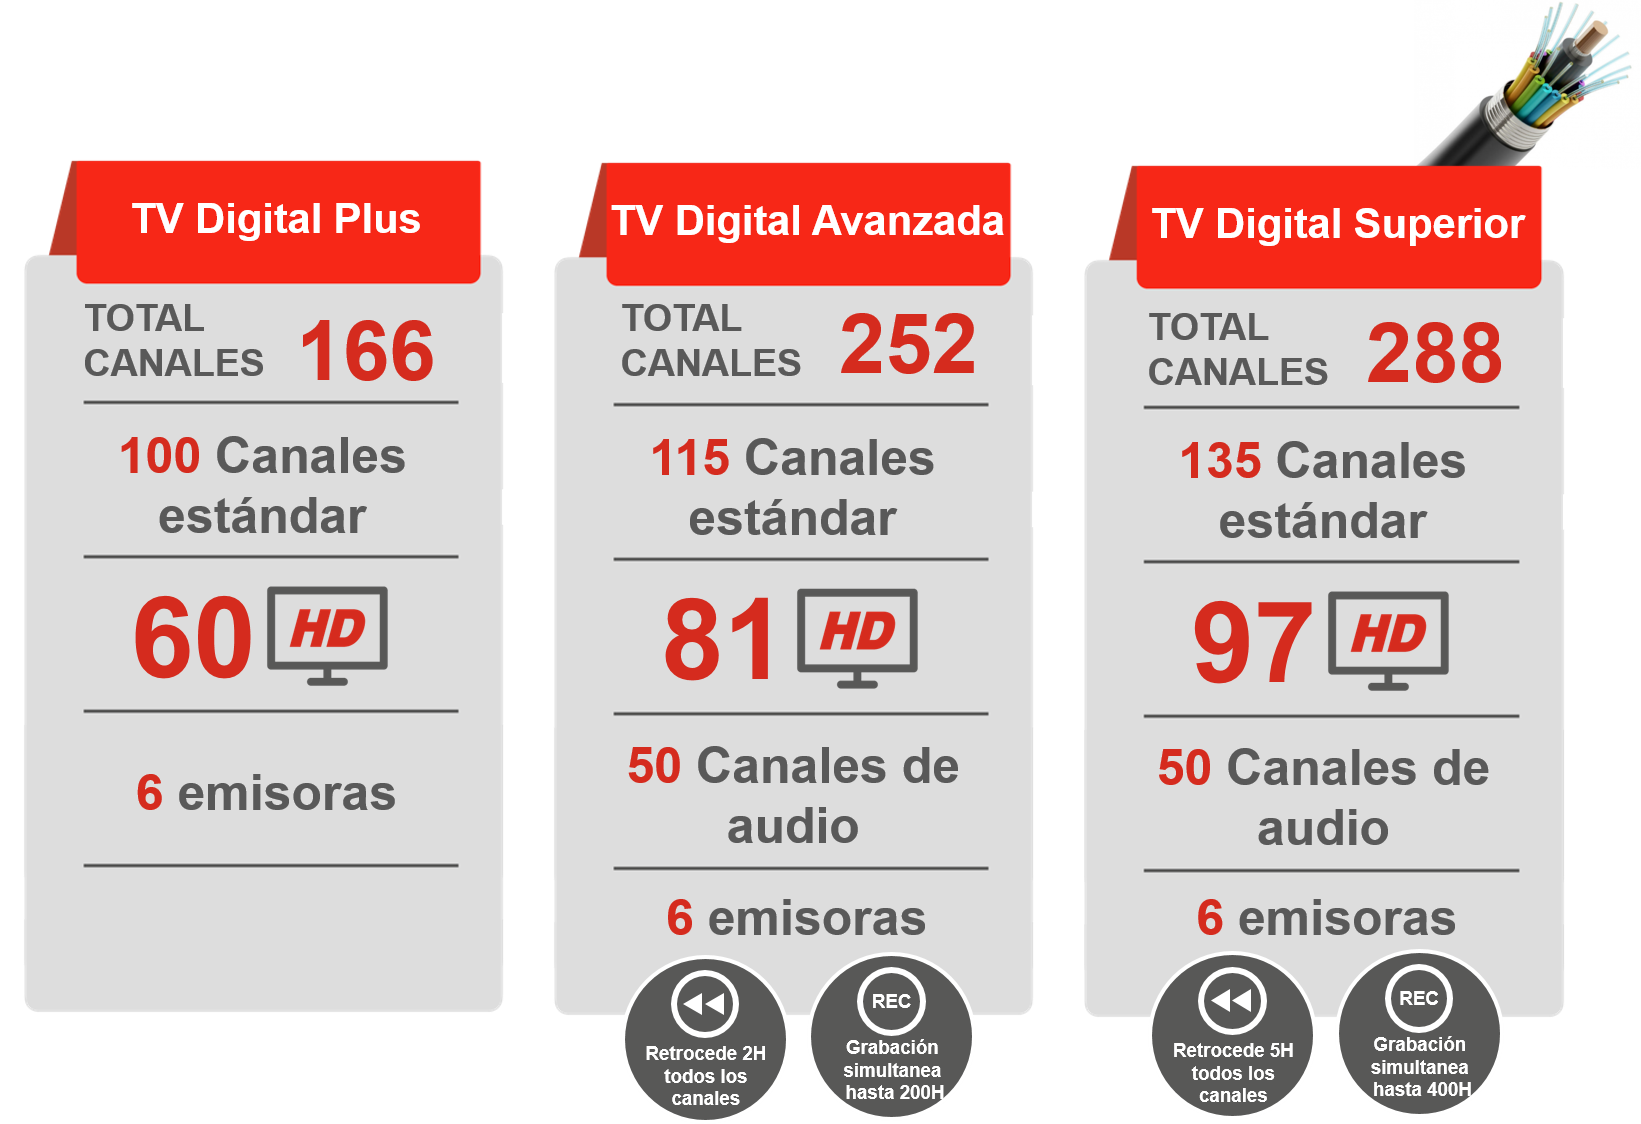 Planes tv Hd 100% digital claro negocios